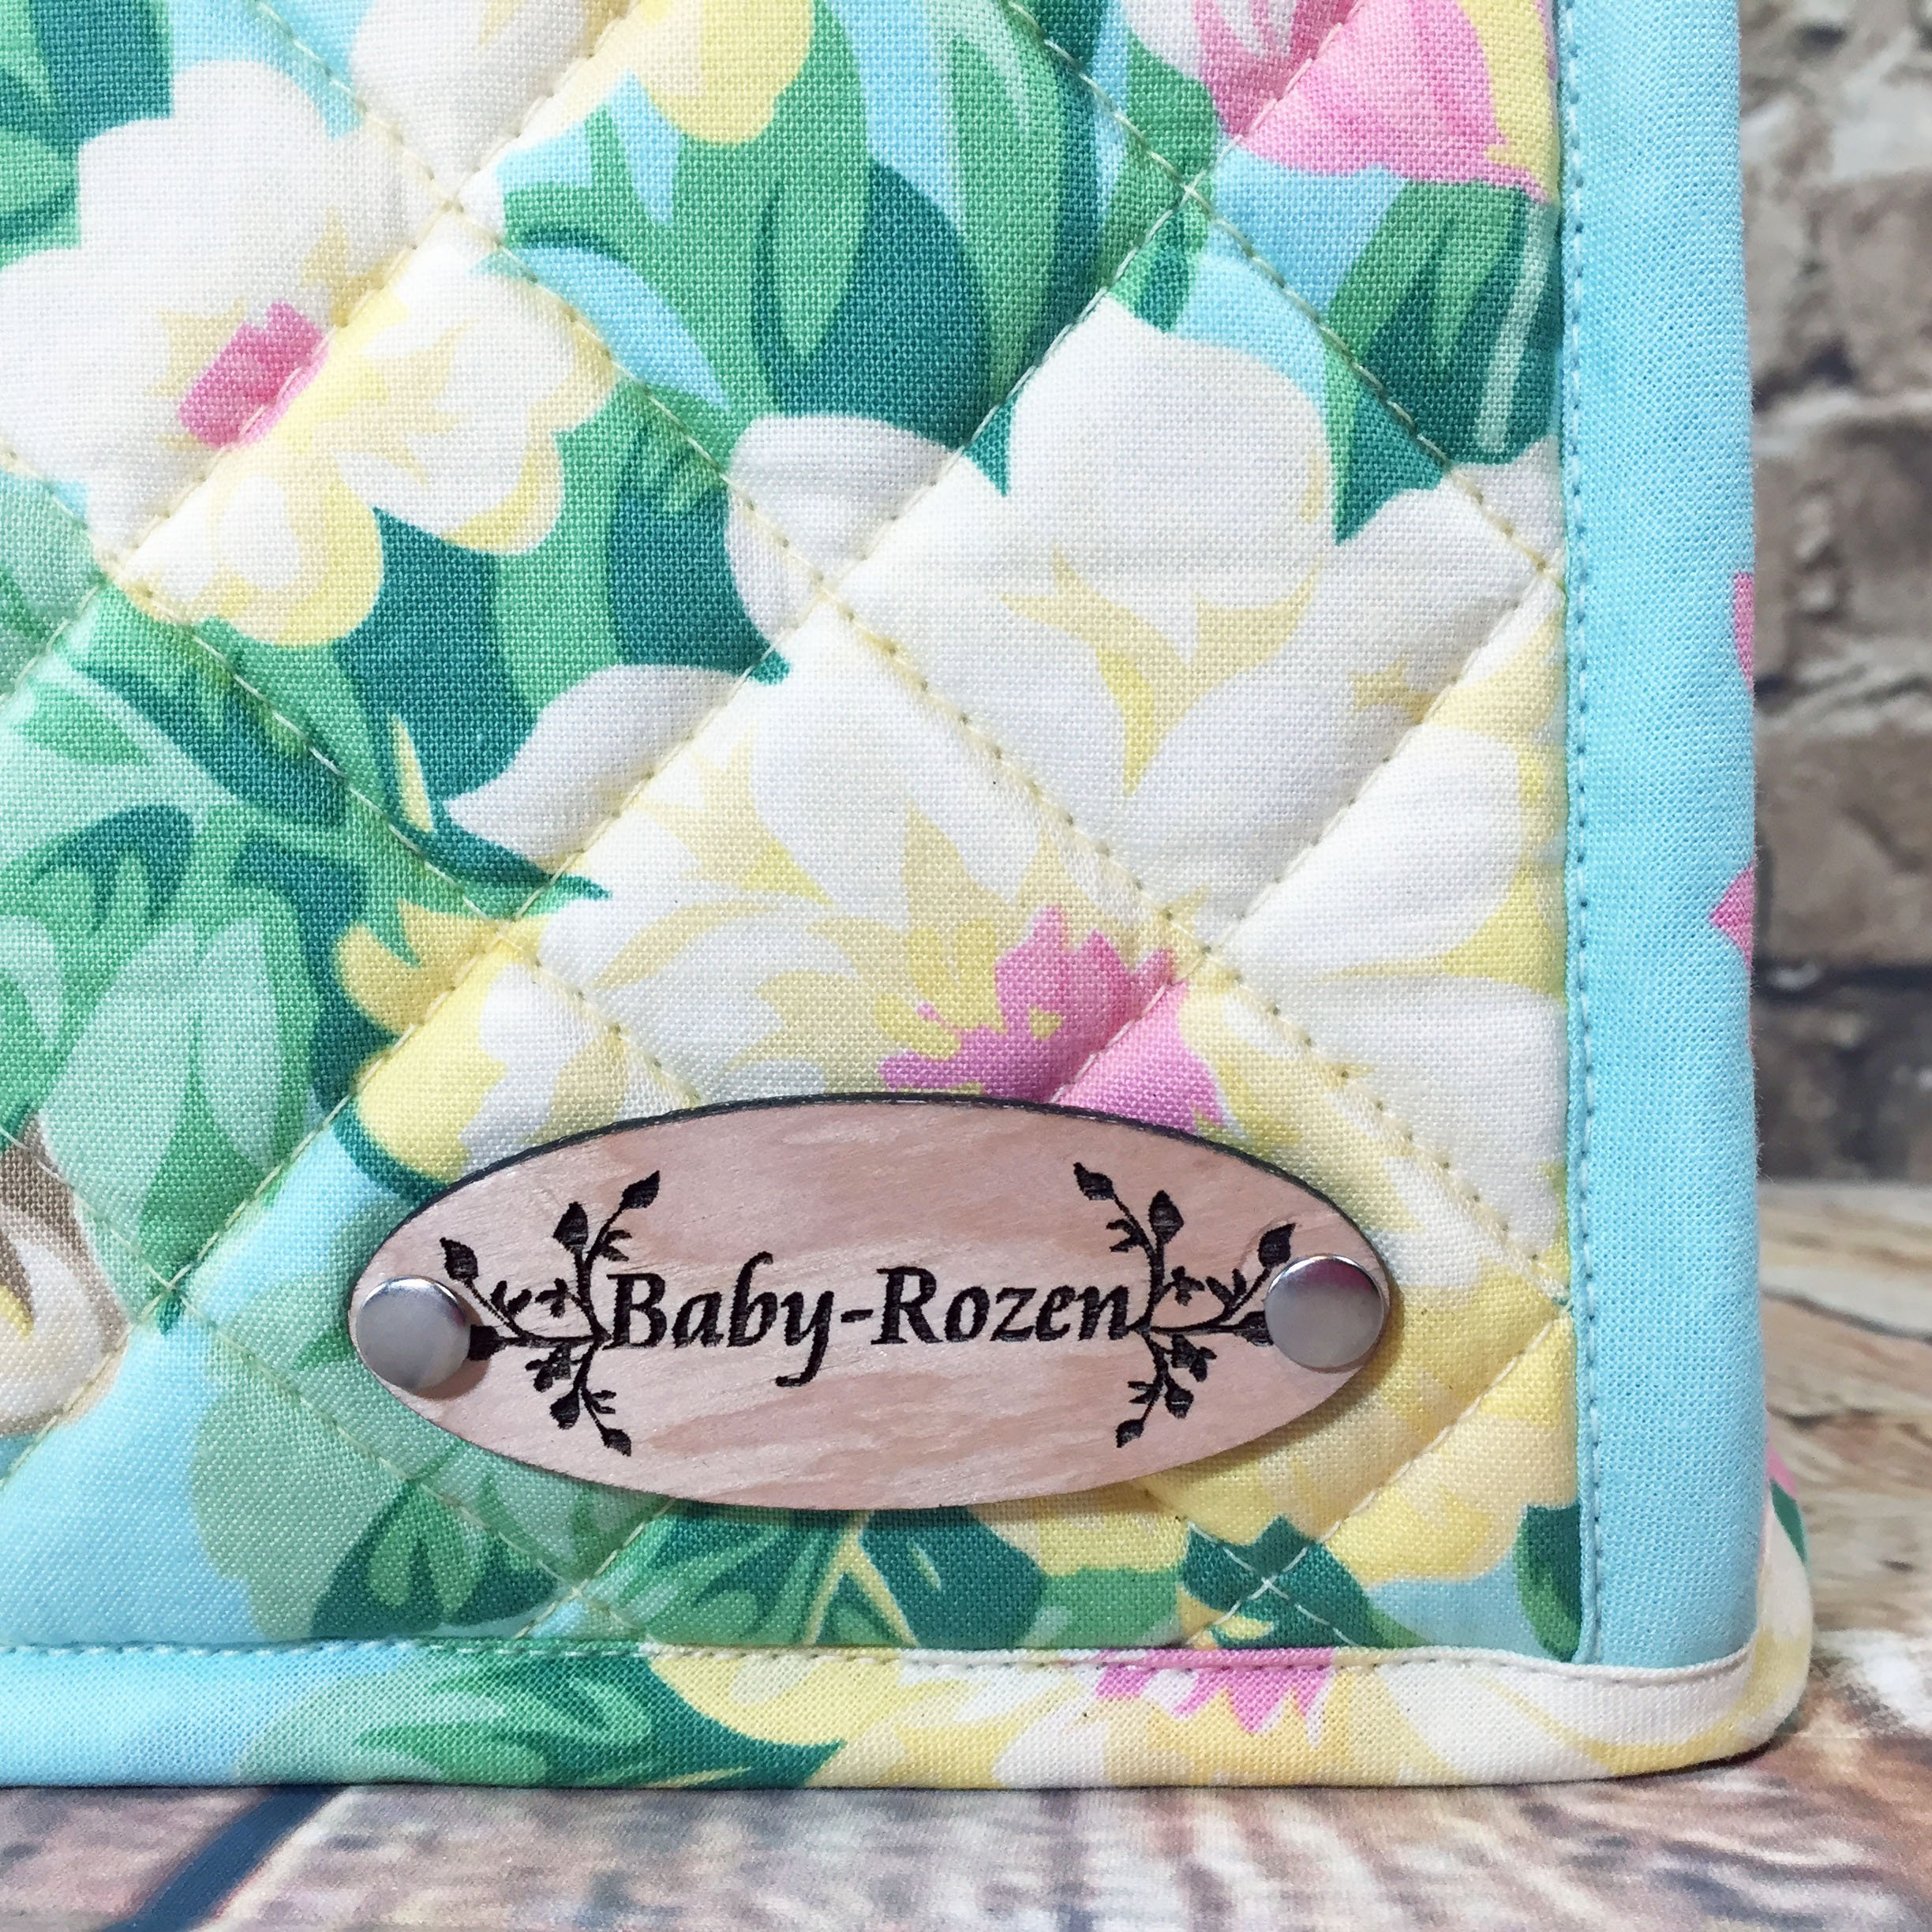 100% Cotton, Custom, Heirloom Quality, Quilted, Mixer Cover, Handcrafted to fit a 4.5 Qt. or 5 Qt. KitchenAid Tilt-Head Stand Mixer, Cozy, Made in Vermont by Baby Rozen Design (Image #8)